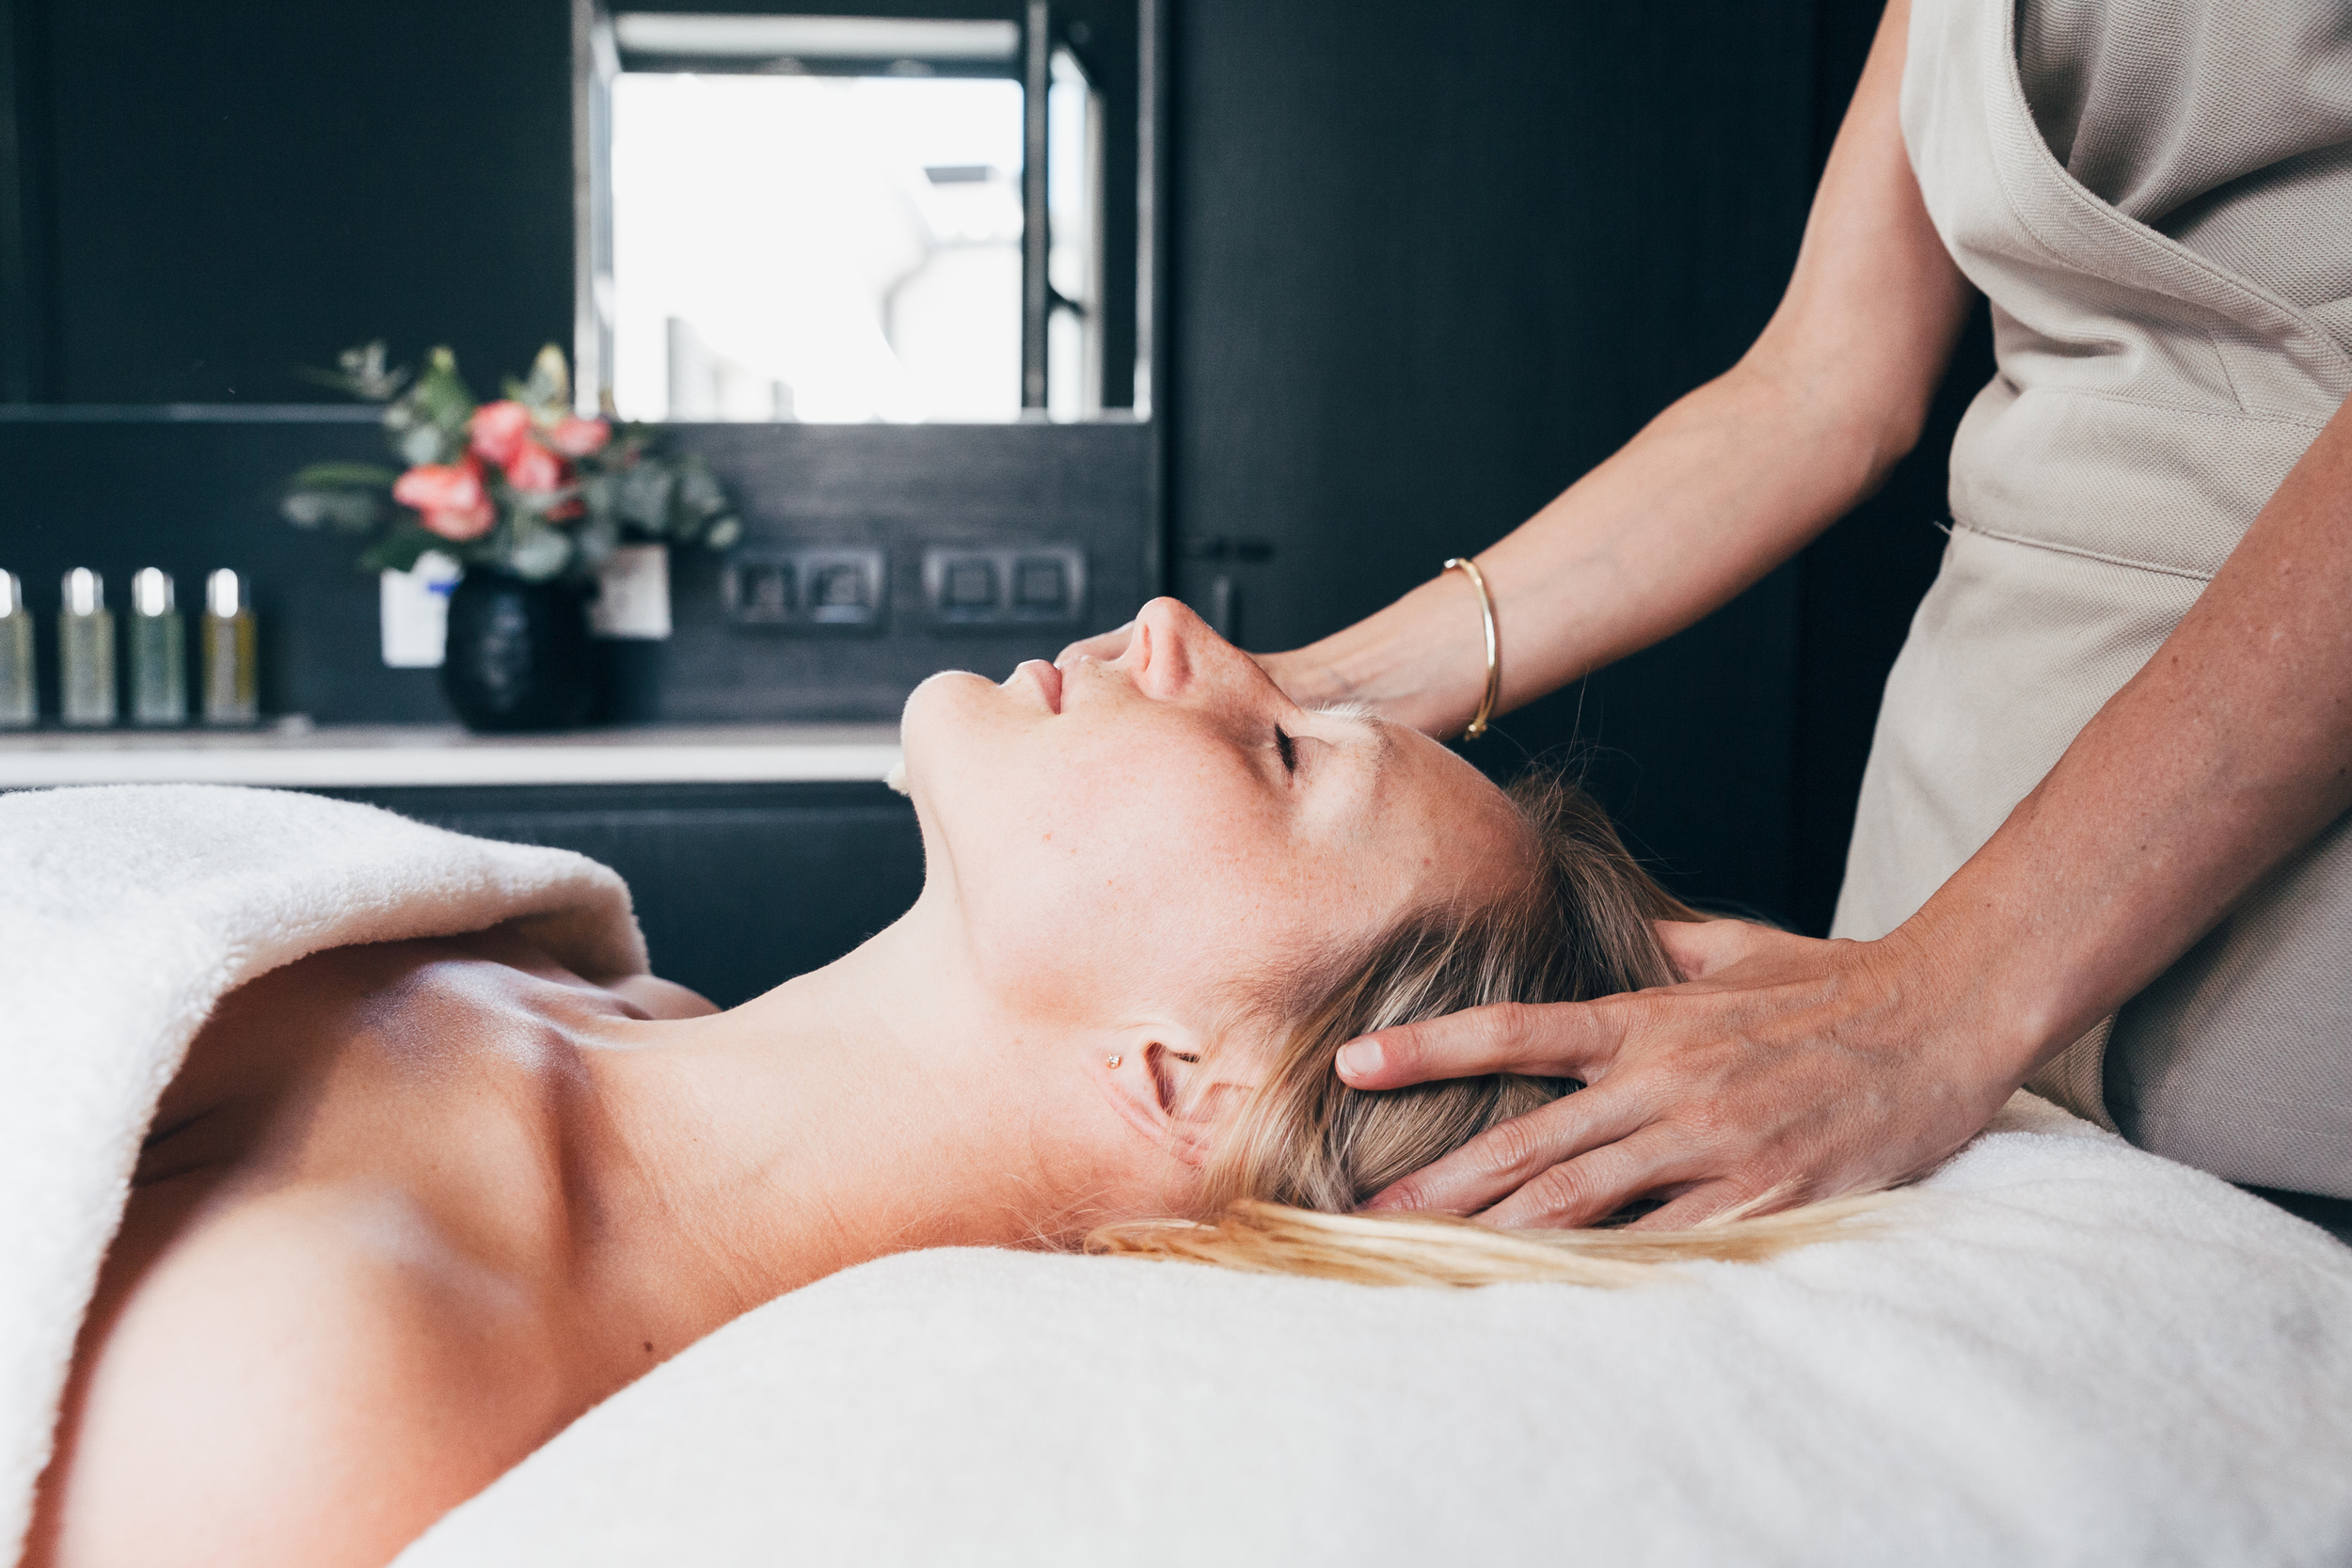 The treatments all merge to create an experience that is, if nothing else, heavenly.